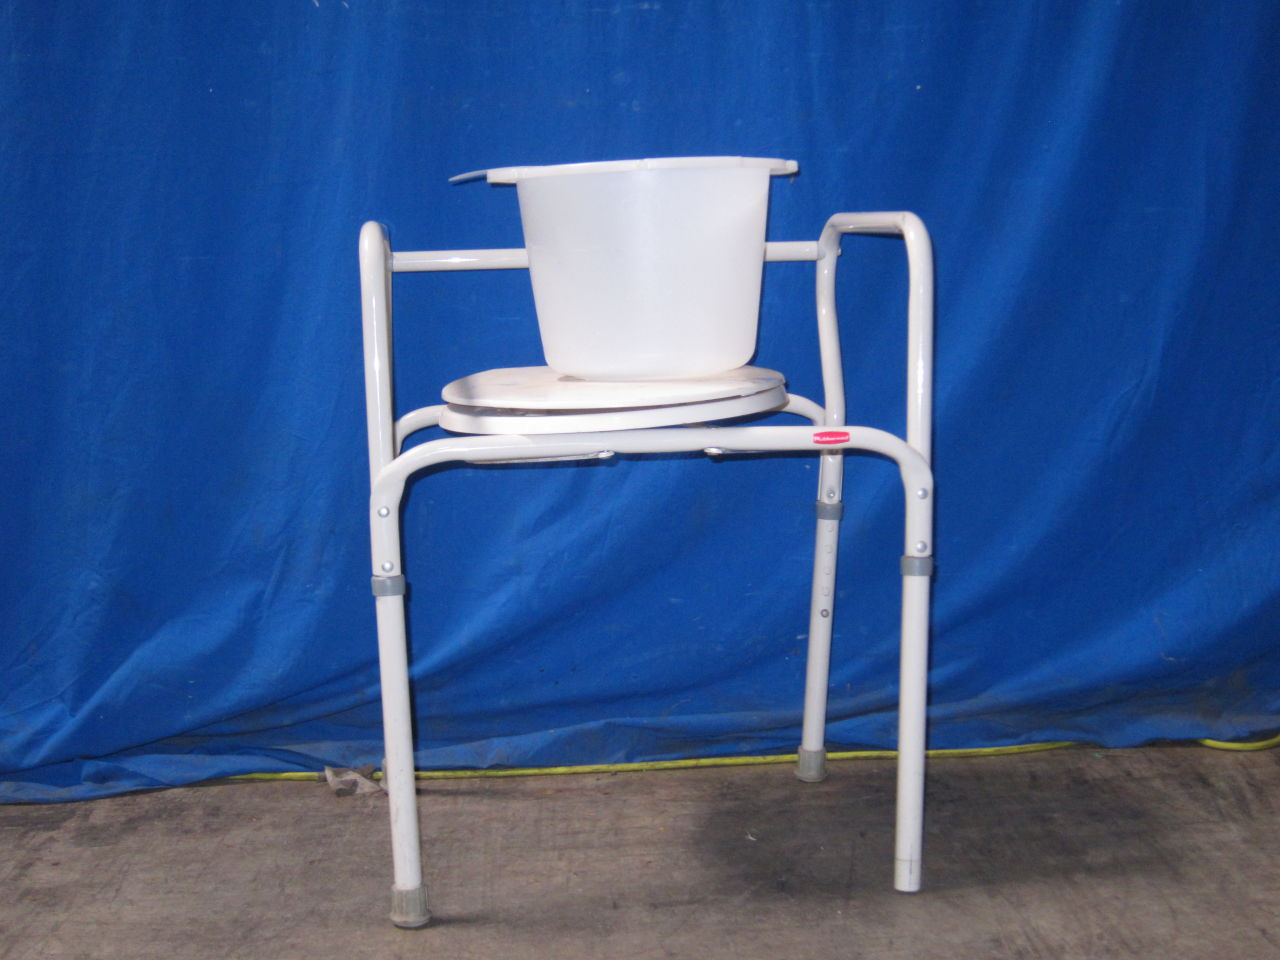 RUBBERMAID  Adult Toilet Chair